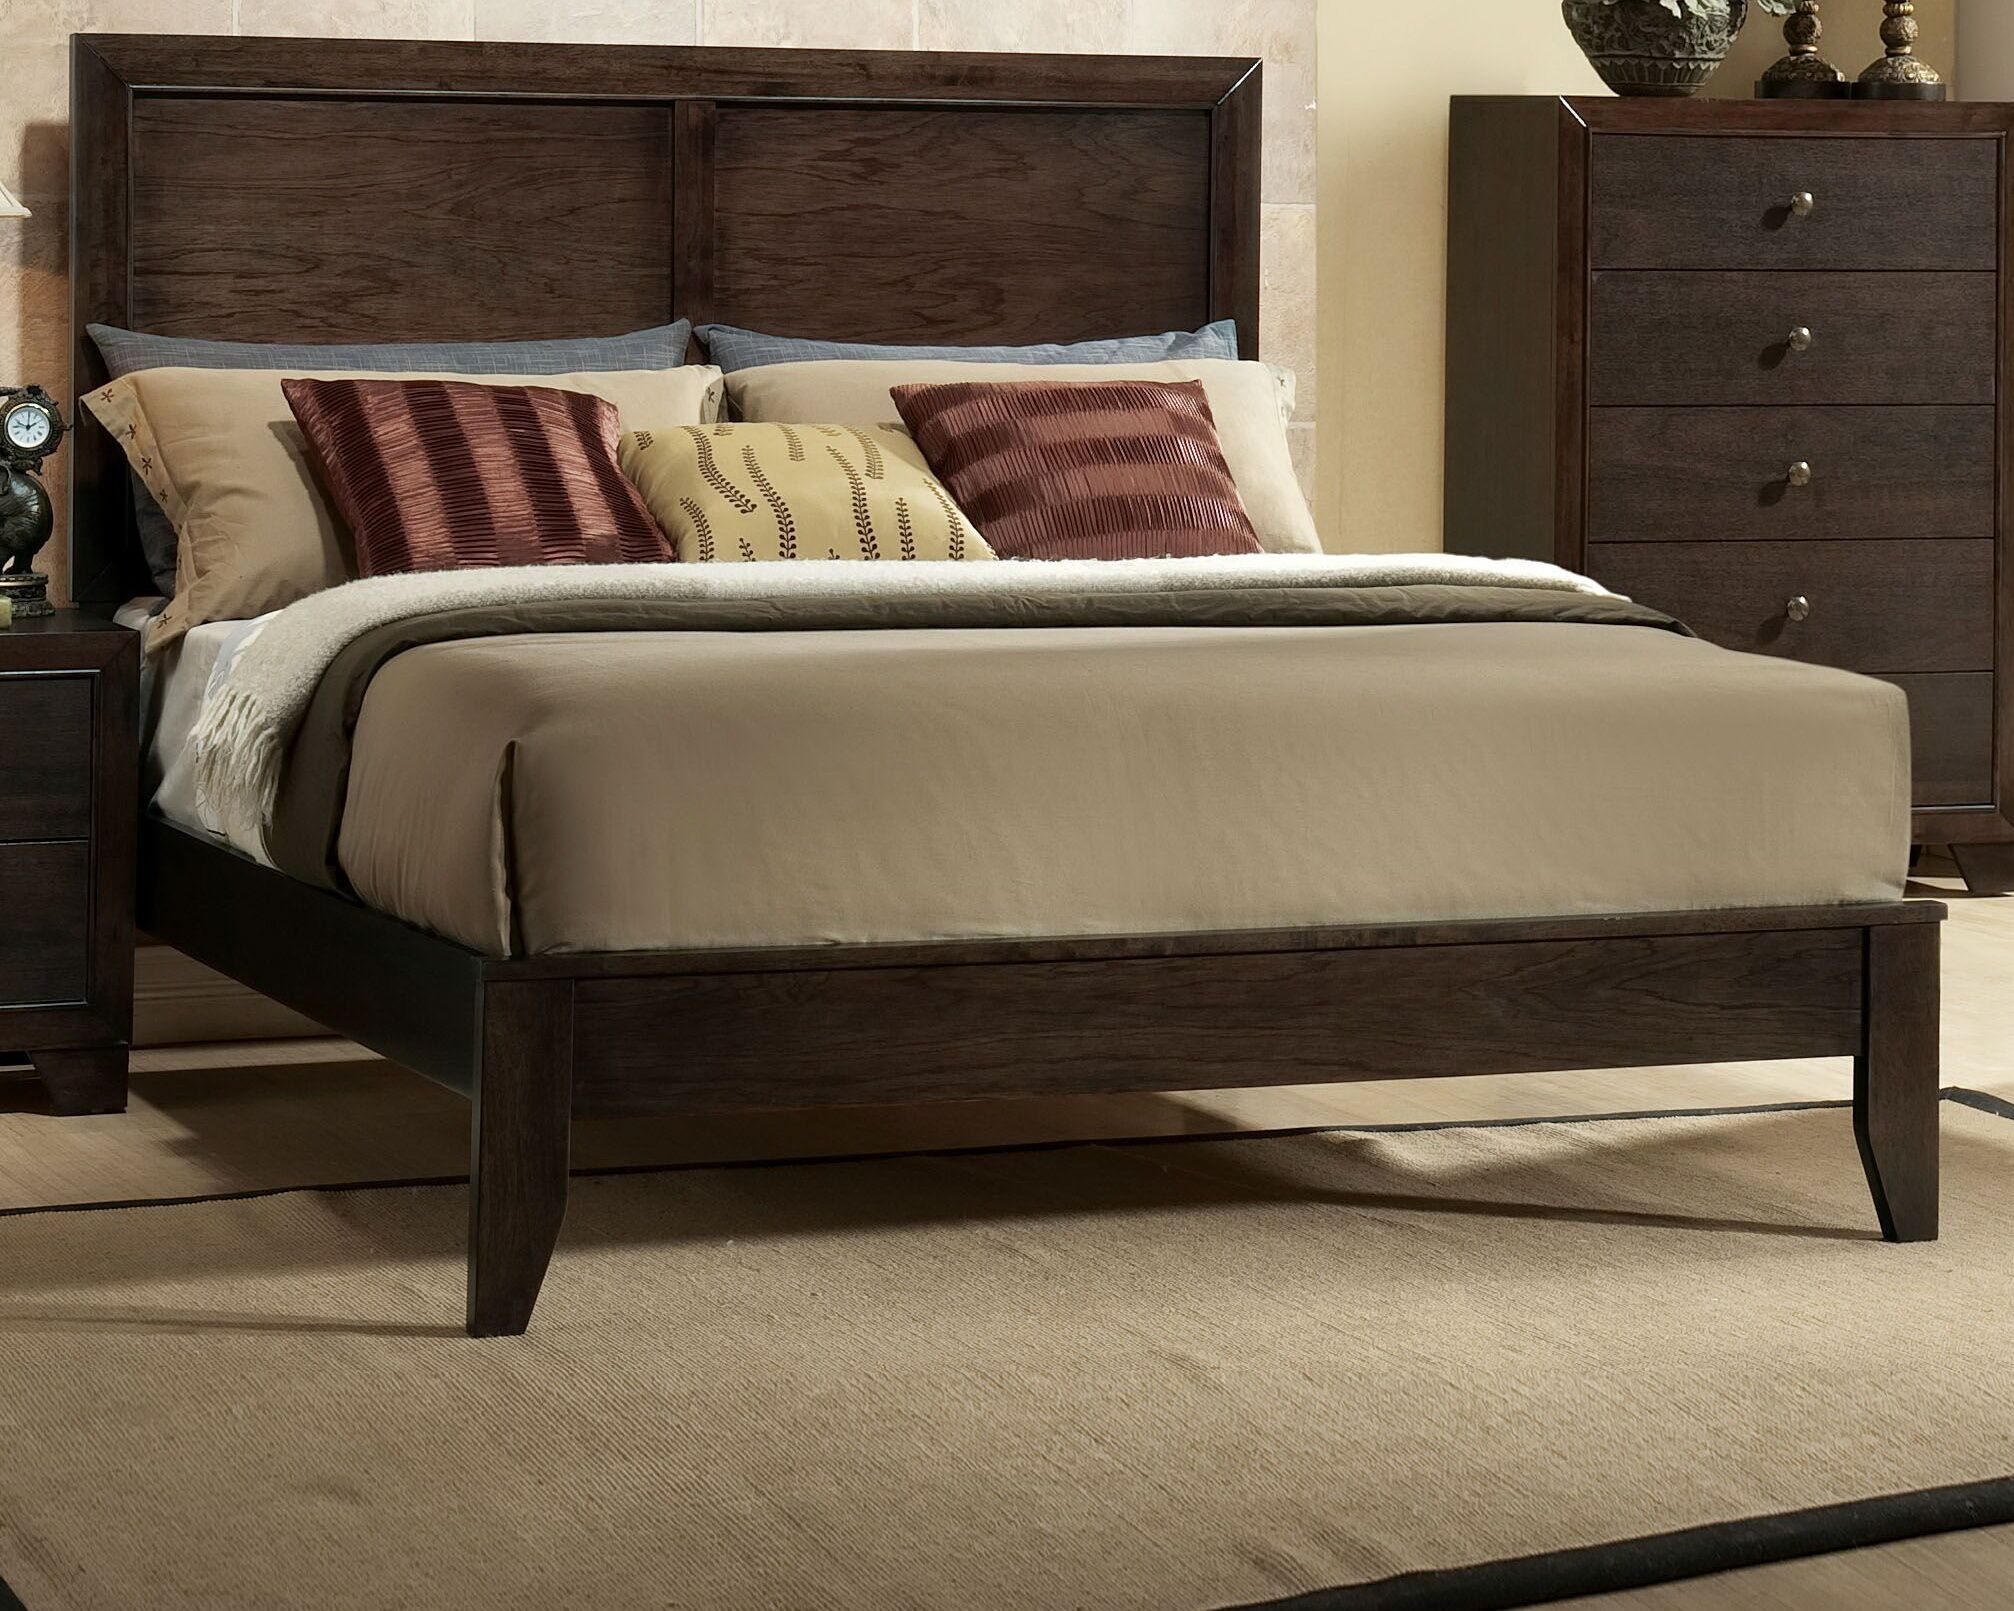 Mcnally Panel Bed Size: Queen